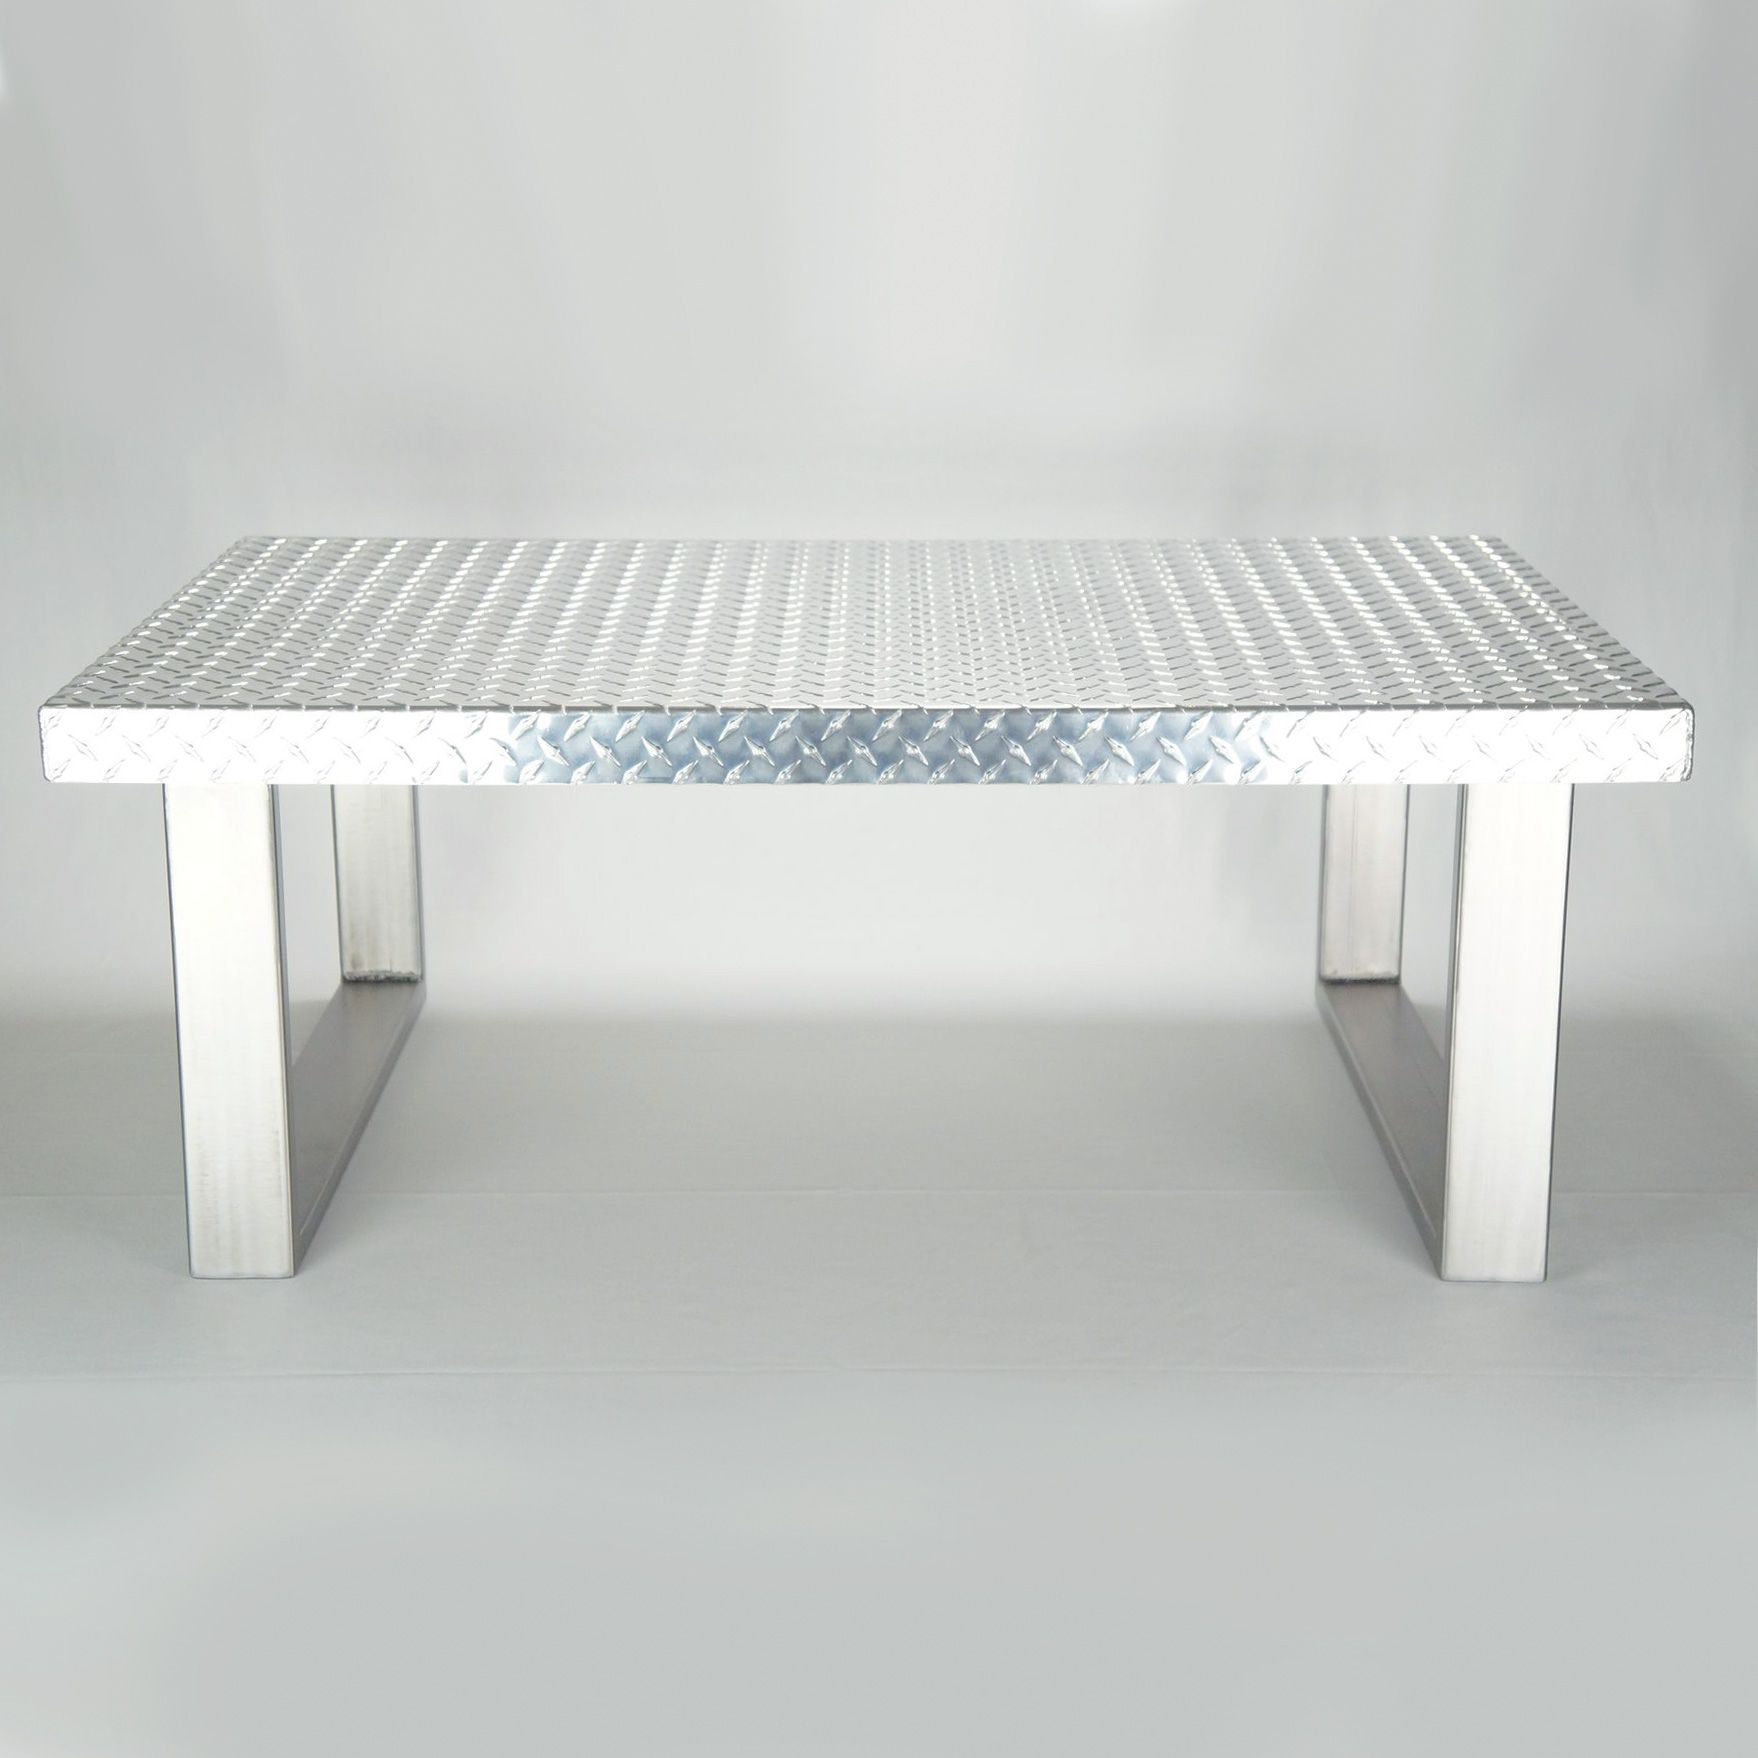 Table Bois Metal Design: Hand Made Industrial Diamond Plate Metal Coffee Table By